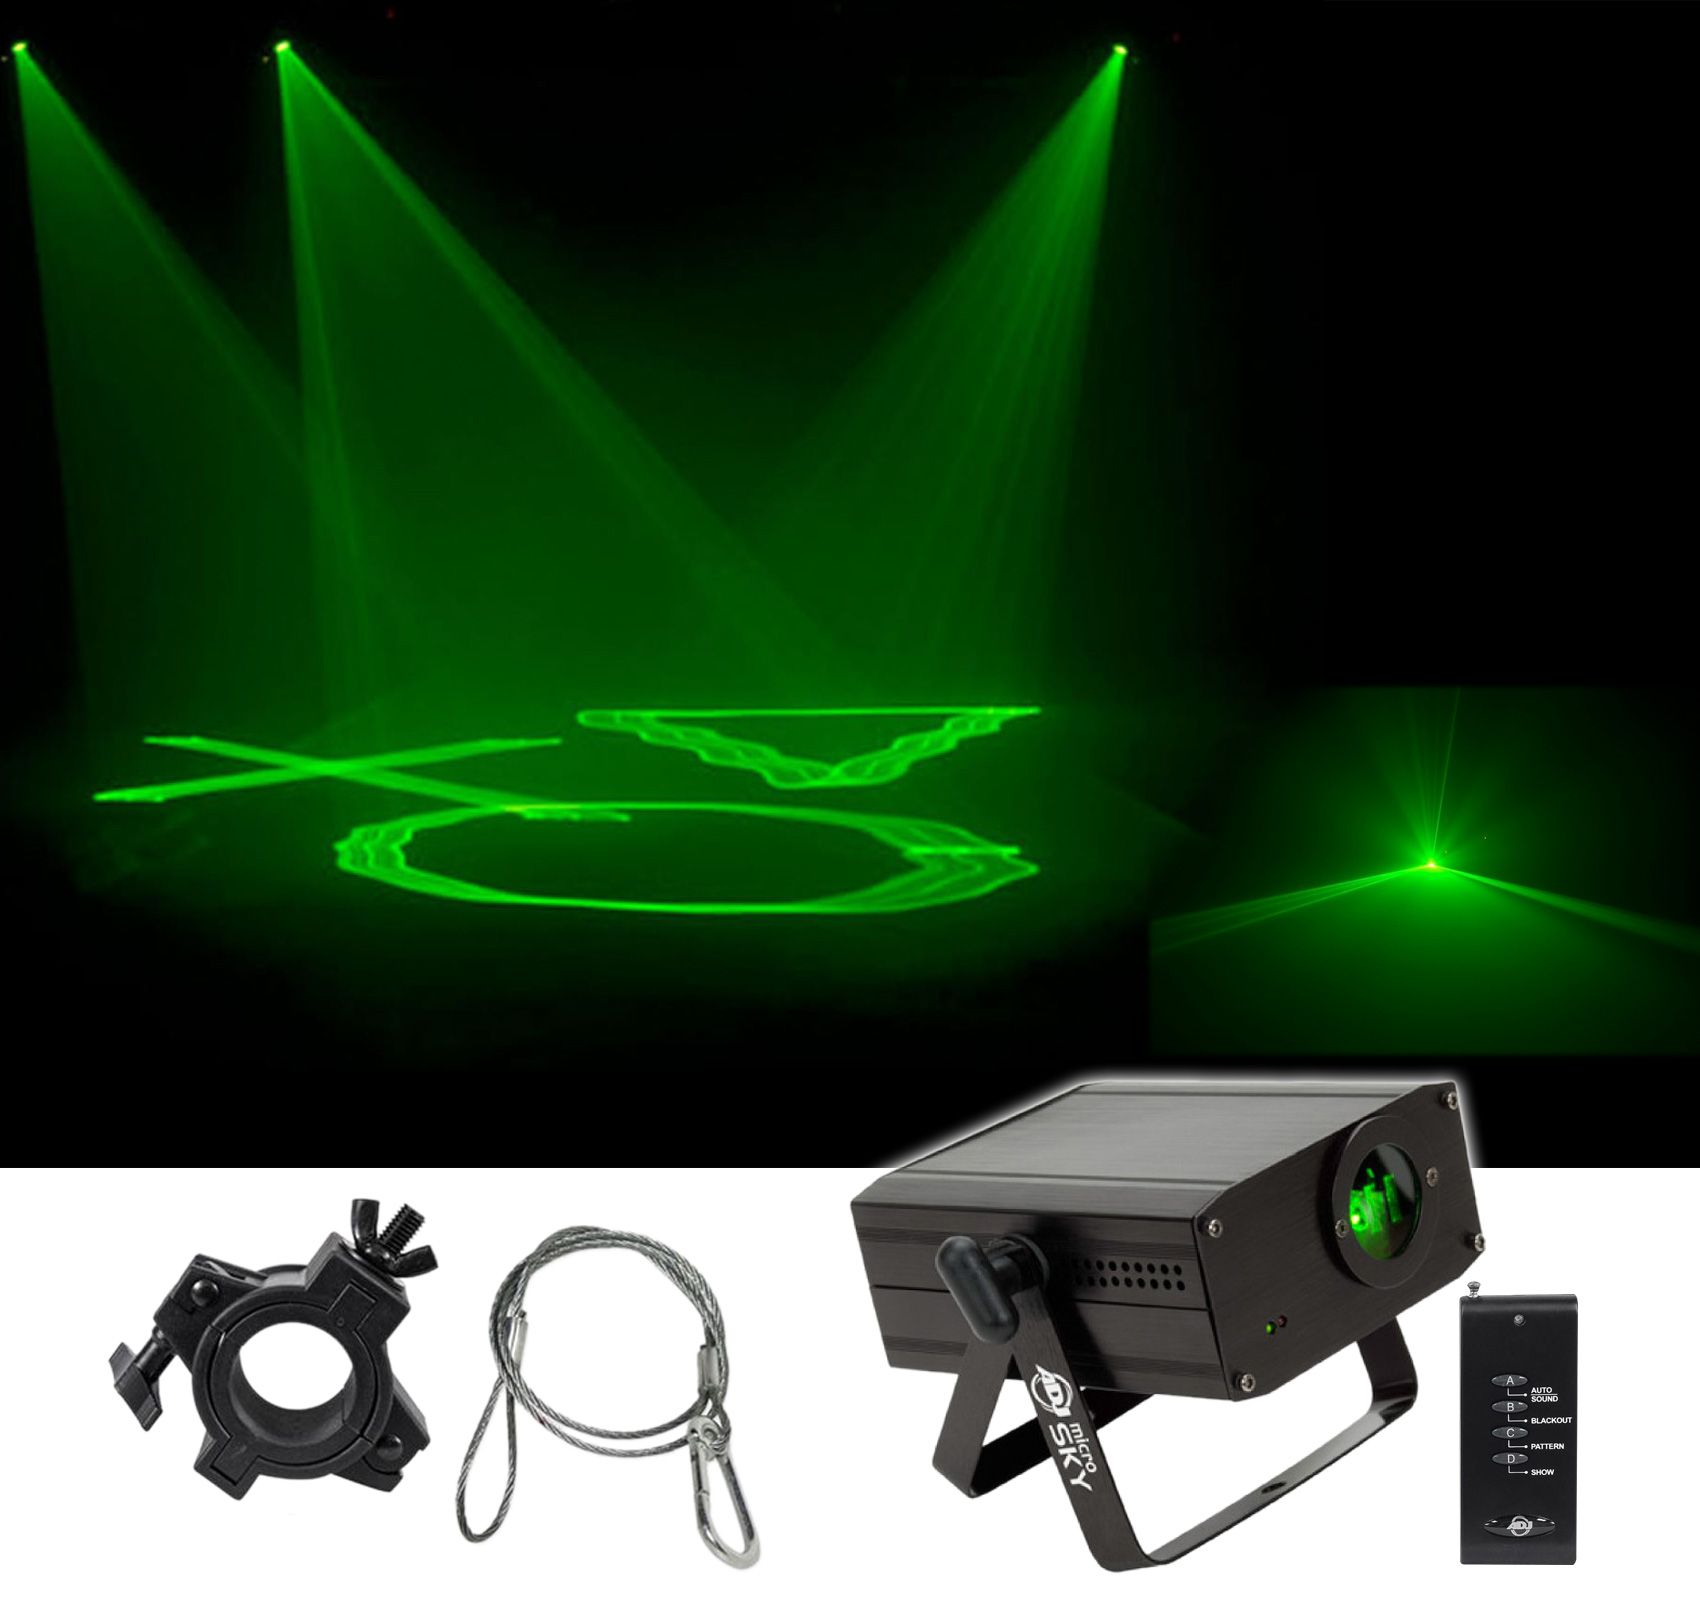 American DJ MICRO SKY Mini Green Laser w Liquid Sky Effect Light +Clamp Security by American DJ